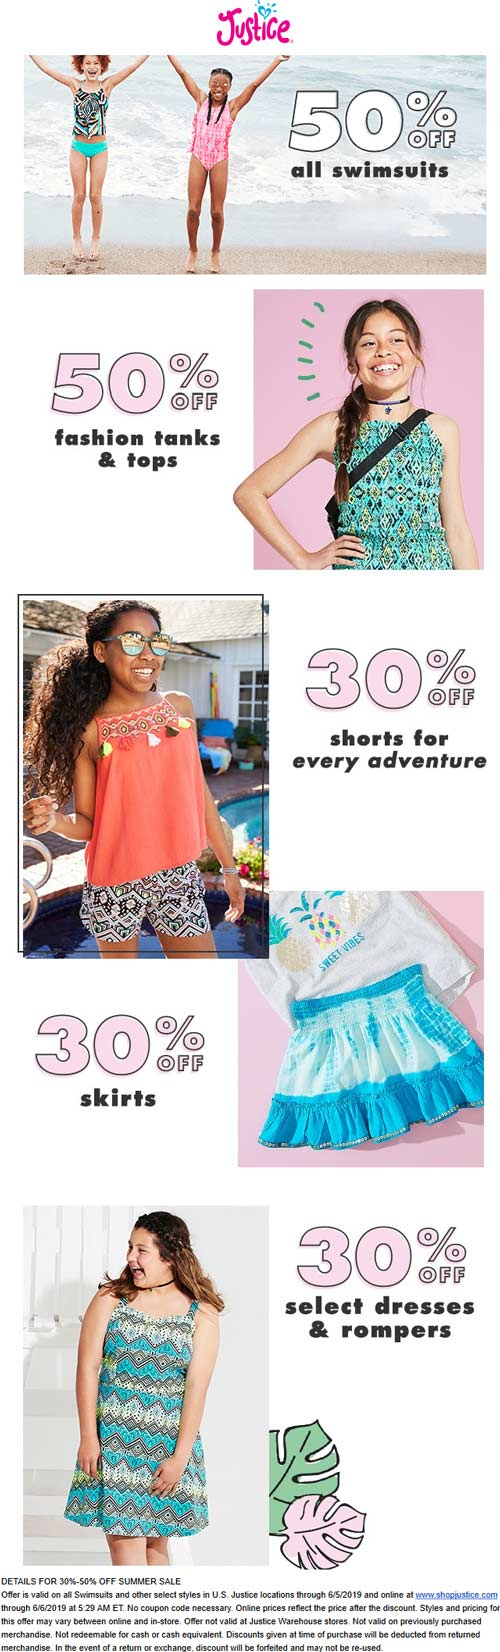 Justice Coupon August 2019 30-50% off Summer gear at Justice, ditto online